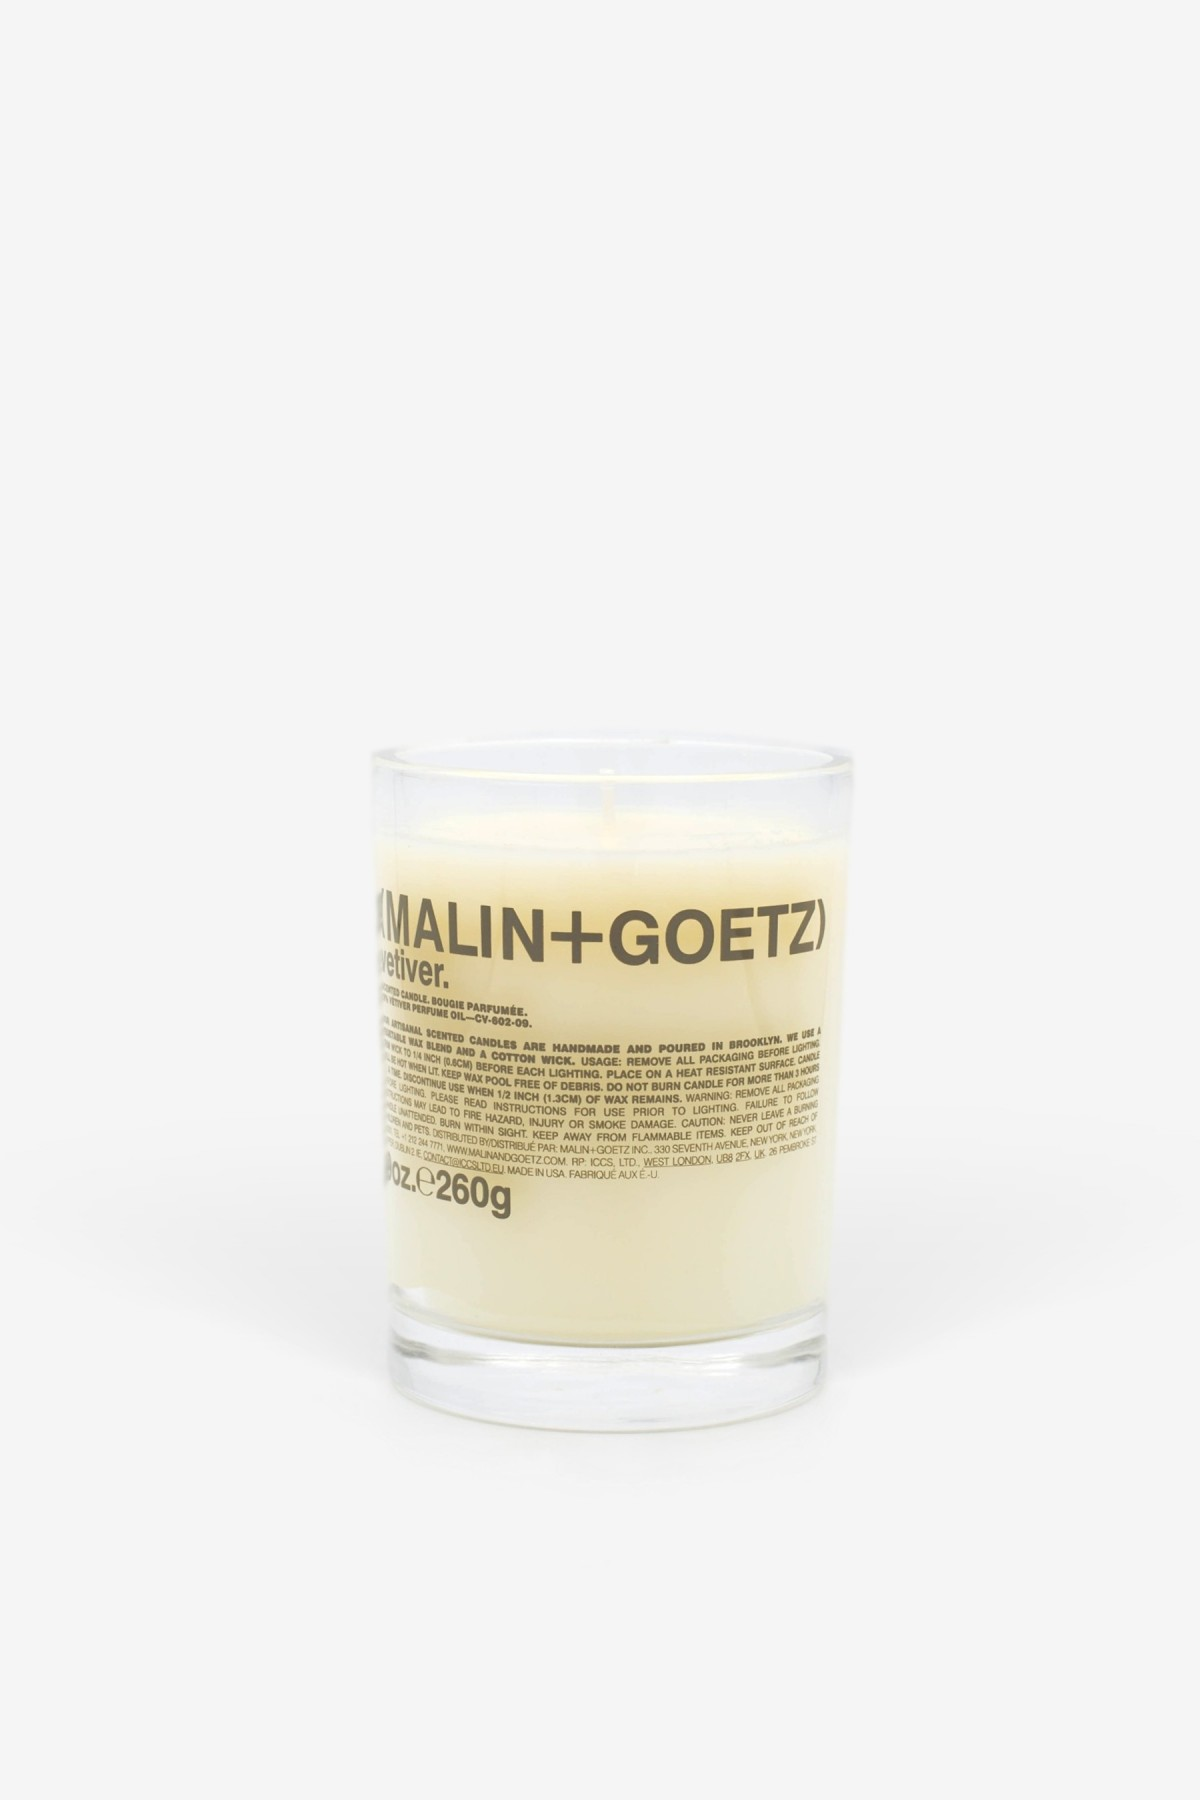 Malin+Goetz Vetiver Candle 260g in